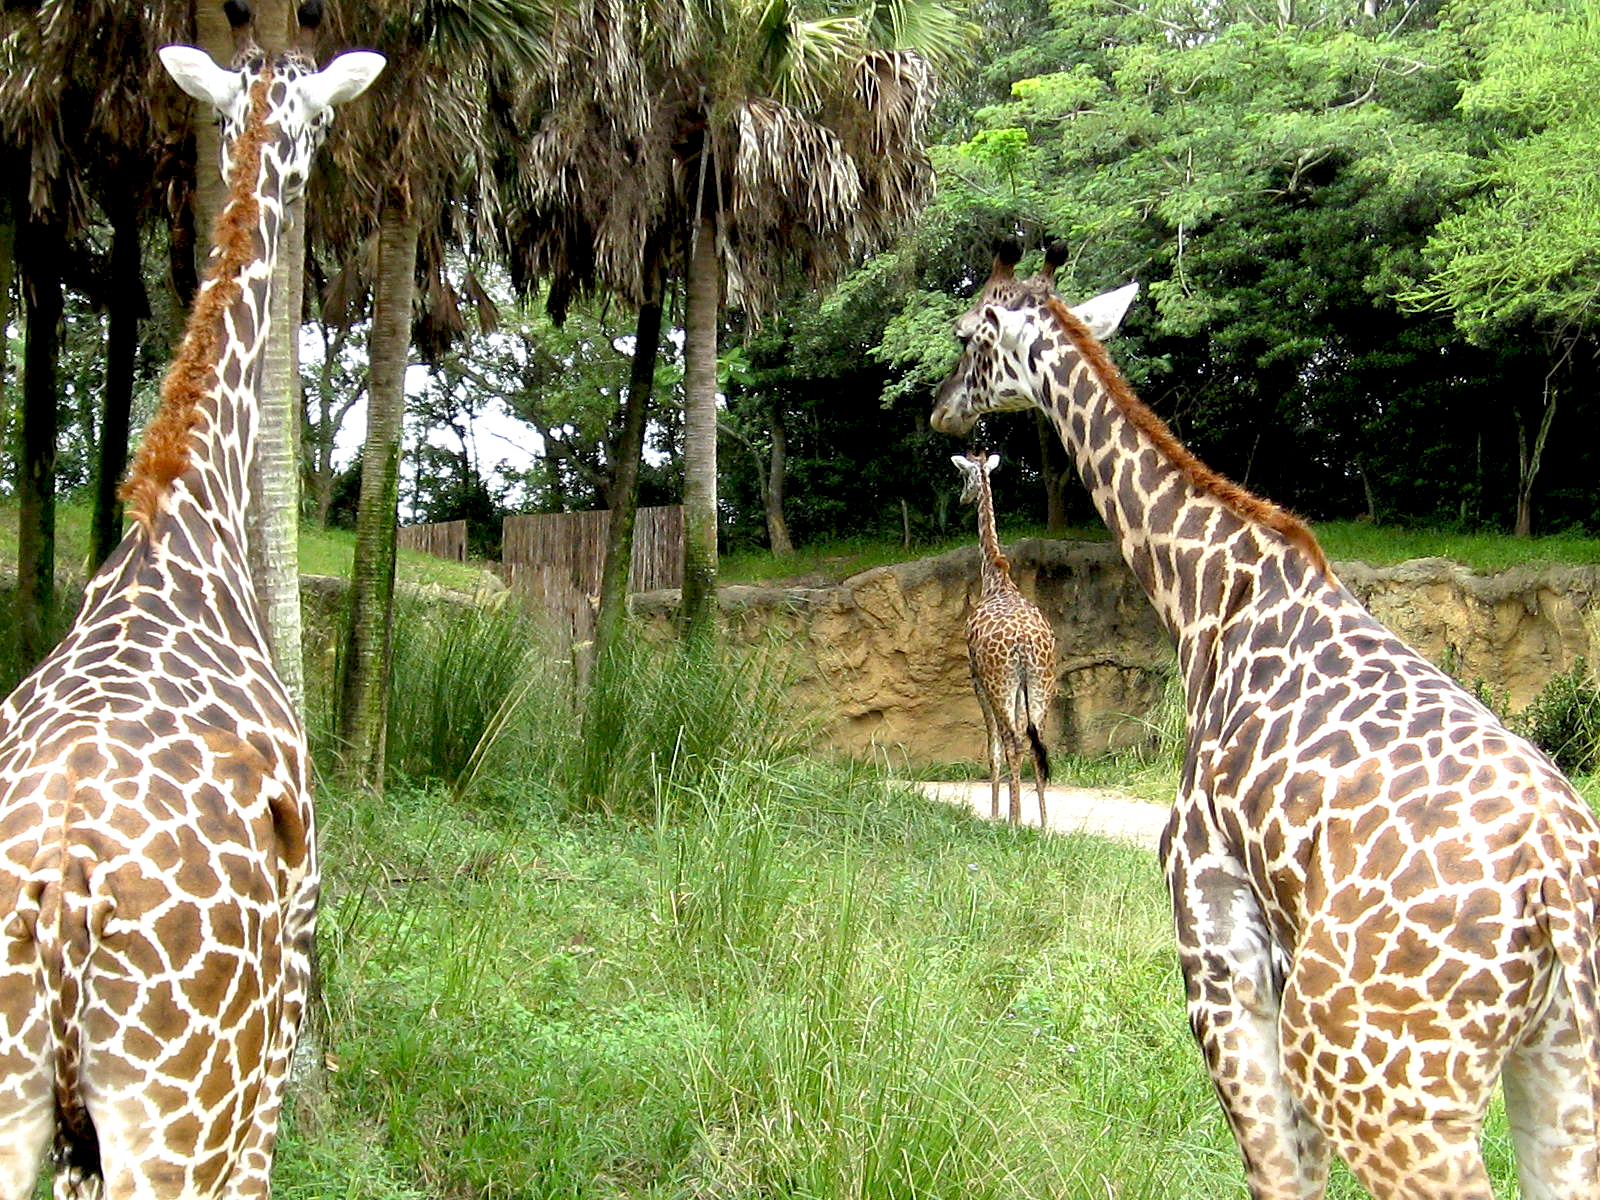 Kilimanjaro Safaris Giraffes in Animal Kingdom